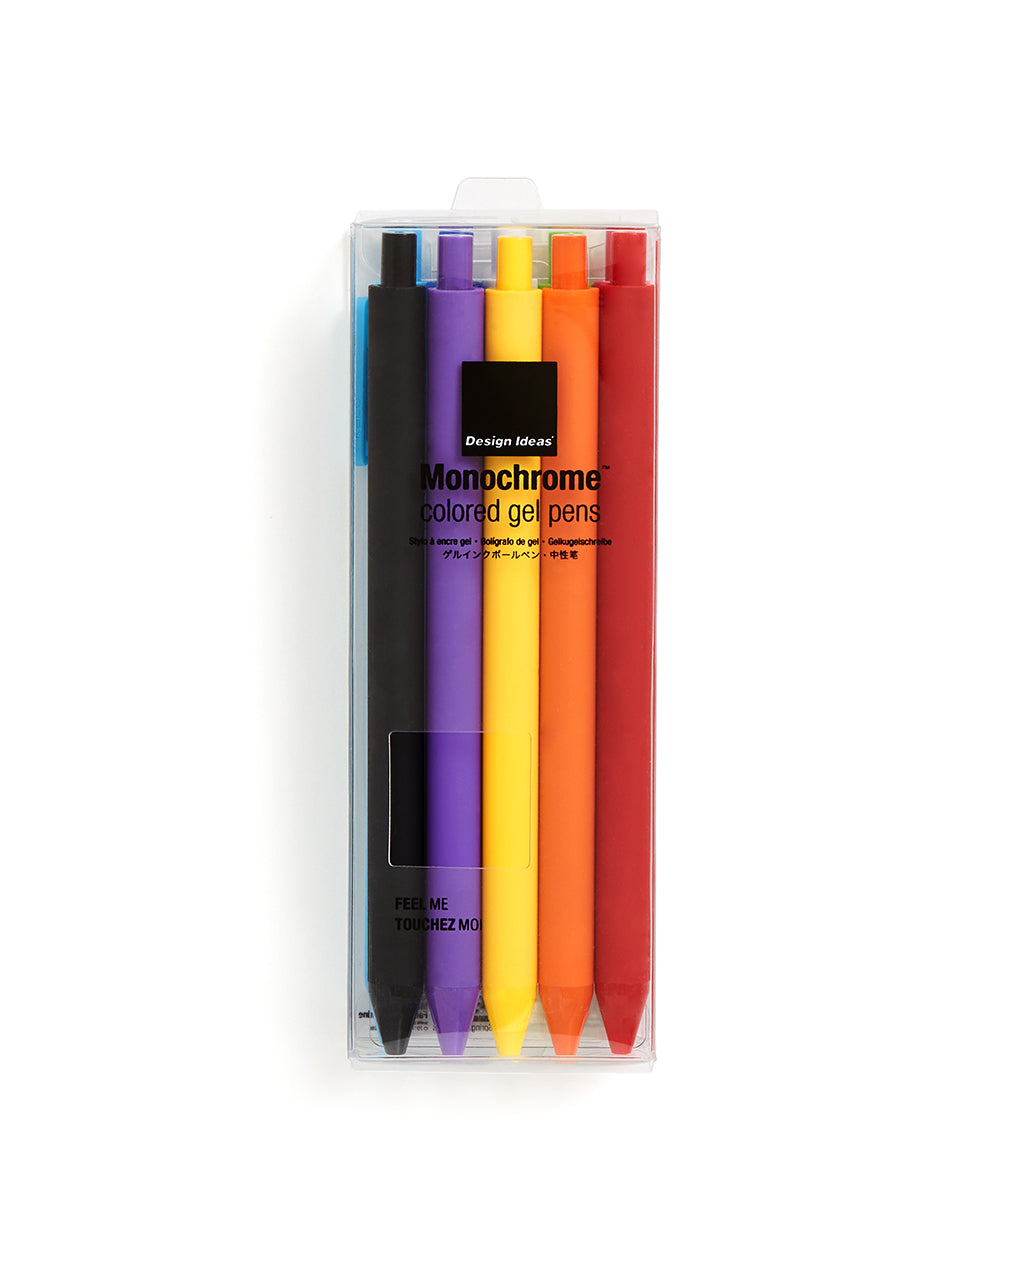 colored gel pens in clear plastic packaging